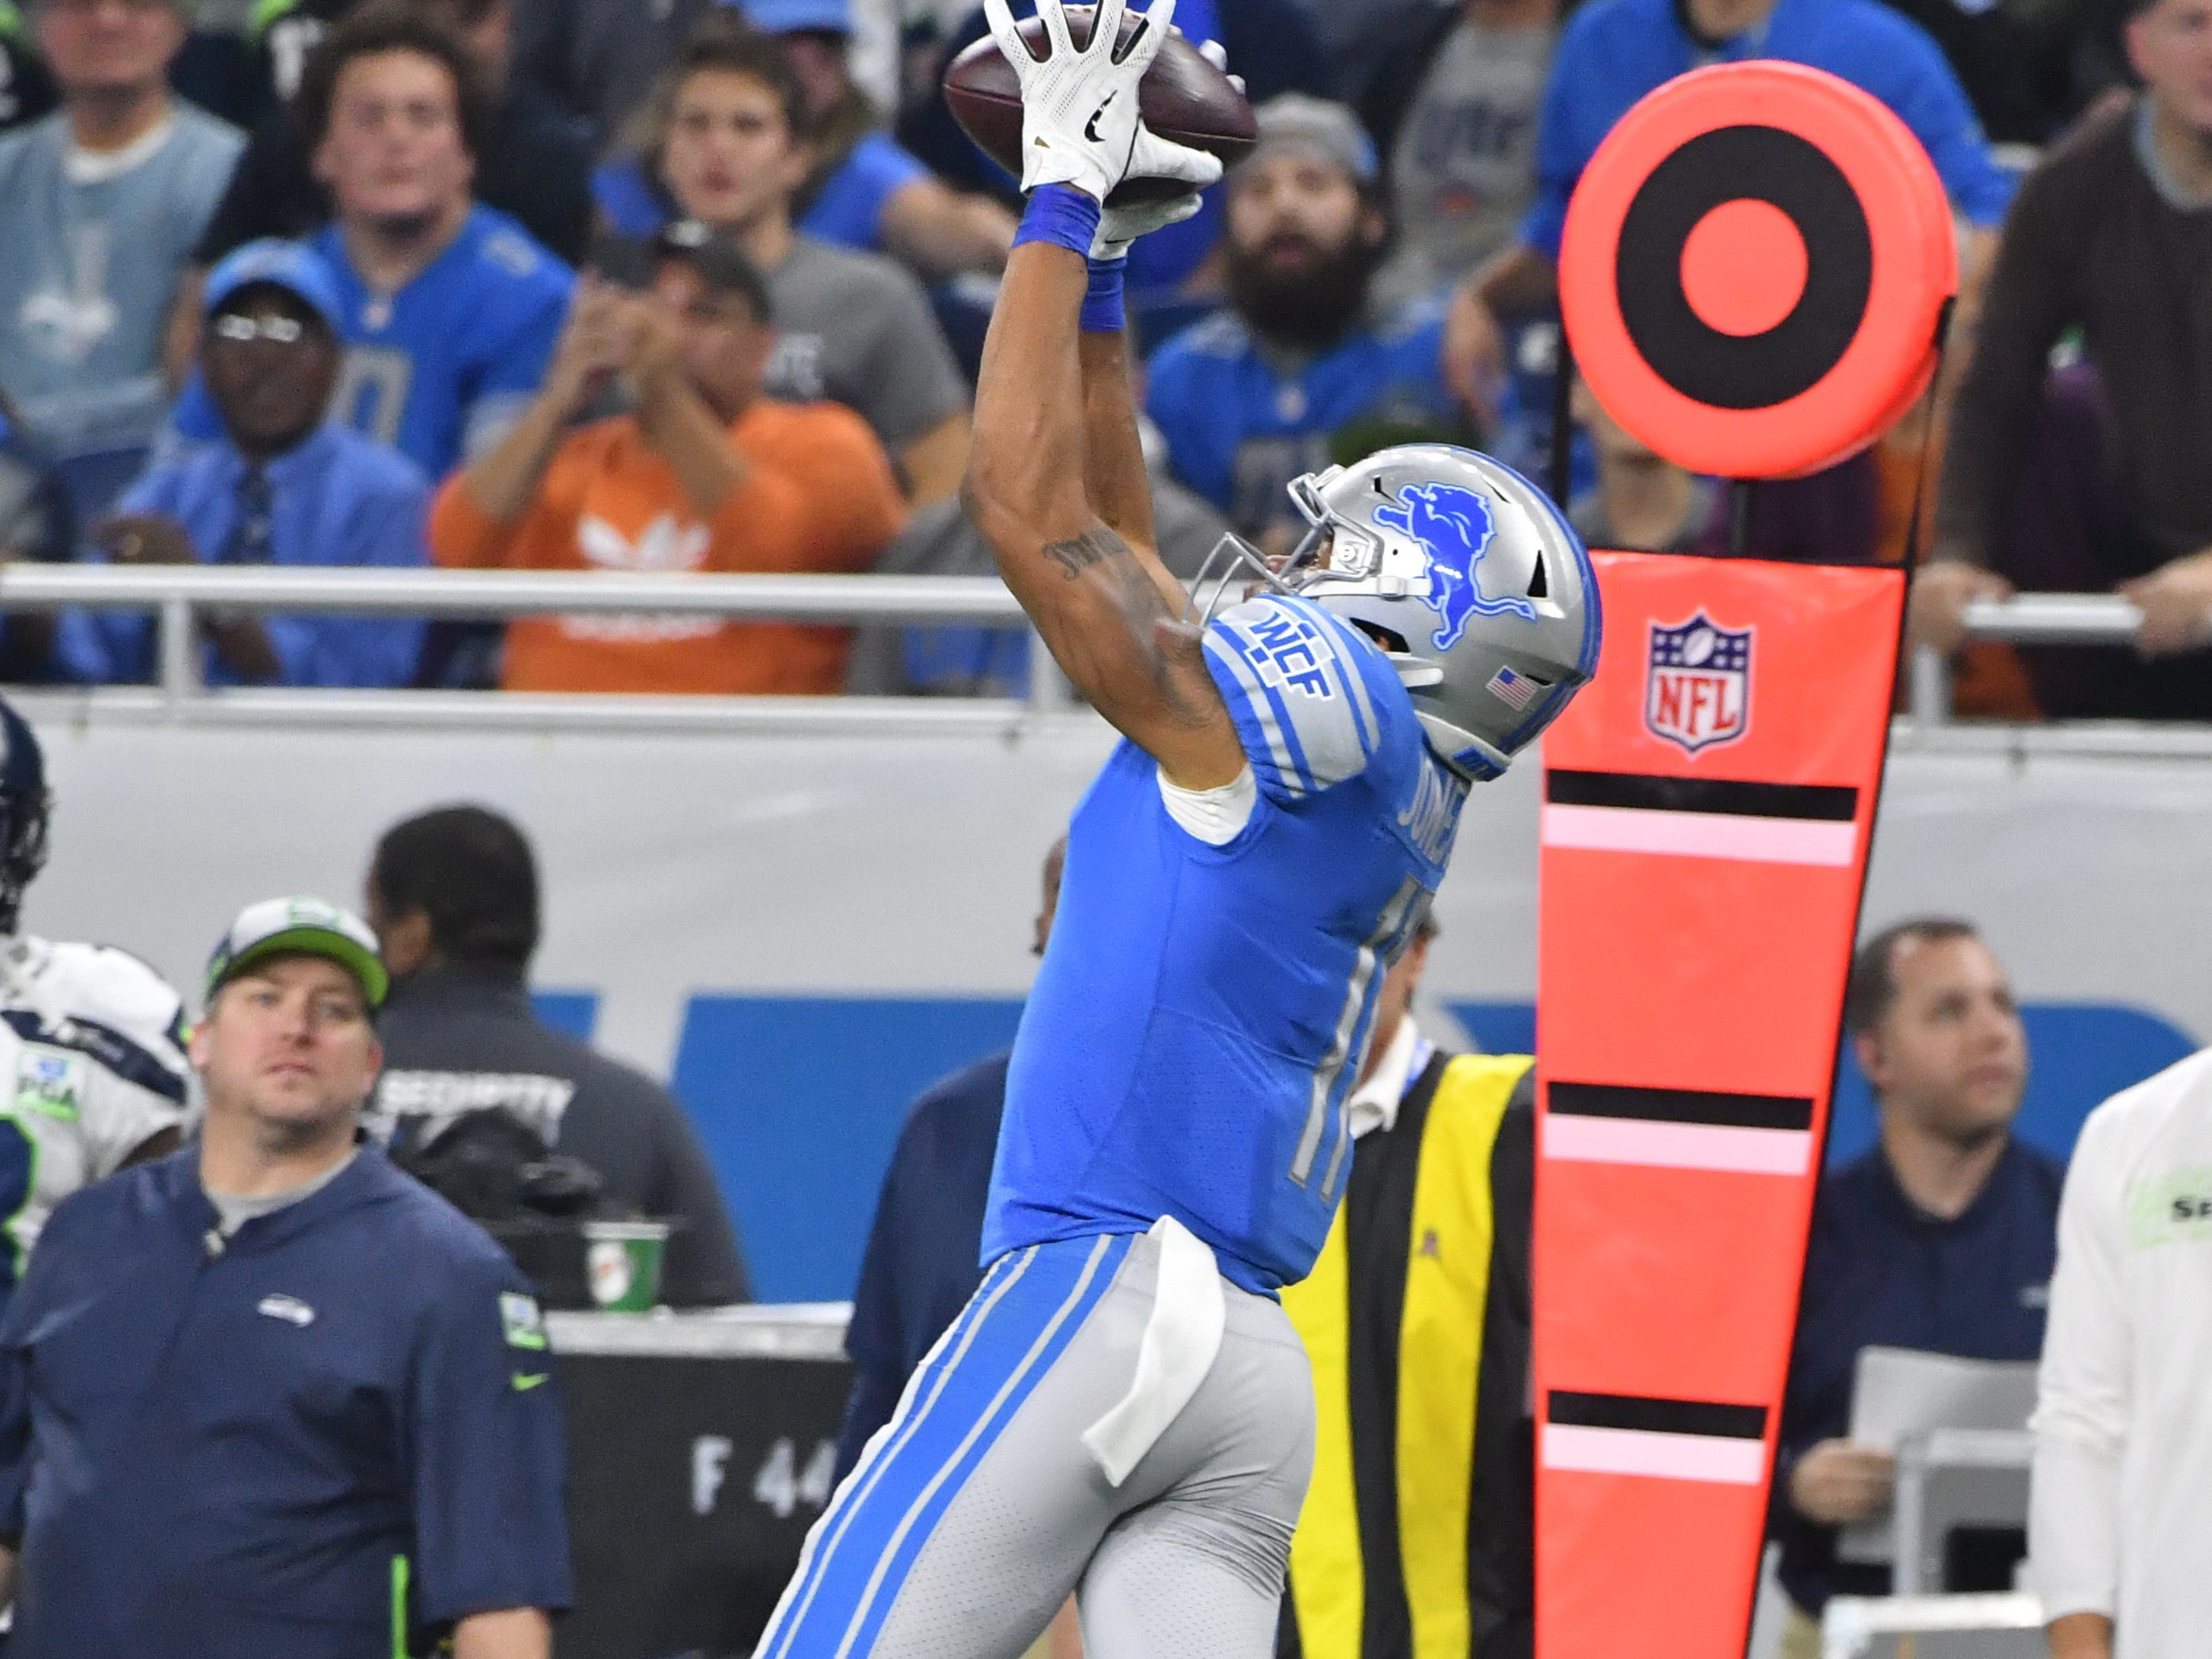 Lions wide receiver Marvin Jones pulls down a long reception down the sidelines in the fourth quarter.